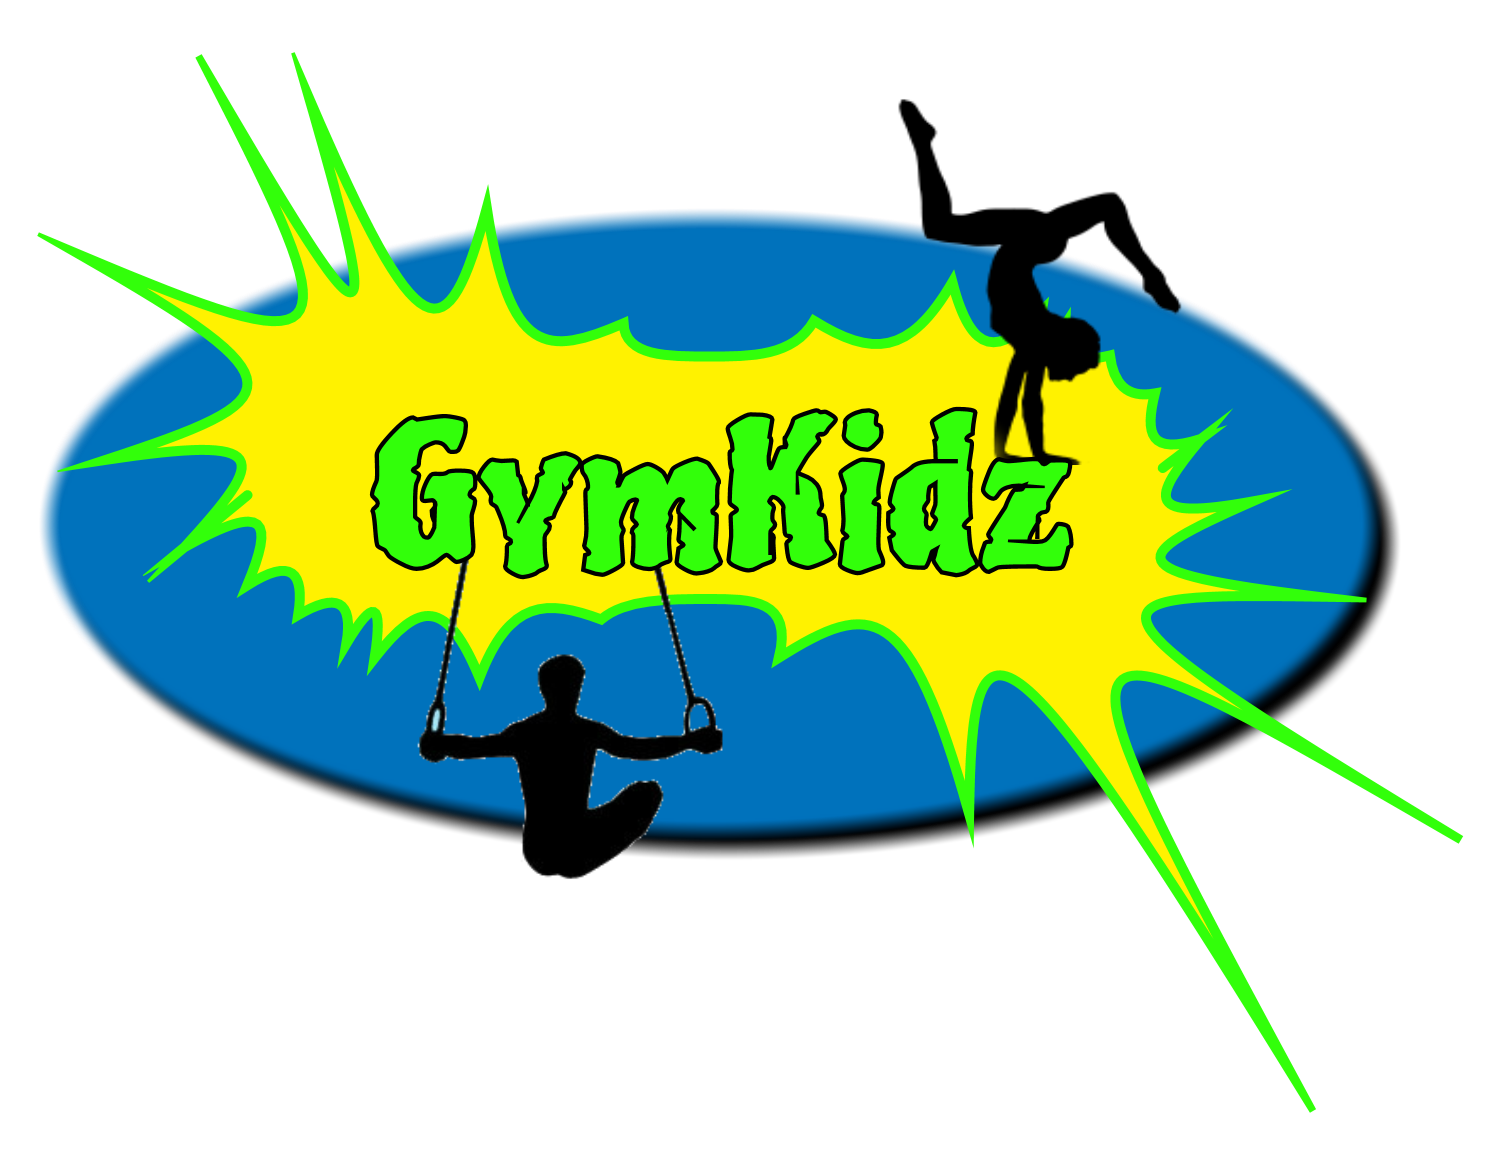 Gym clipart strong boy. Gymkidz boys and girls